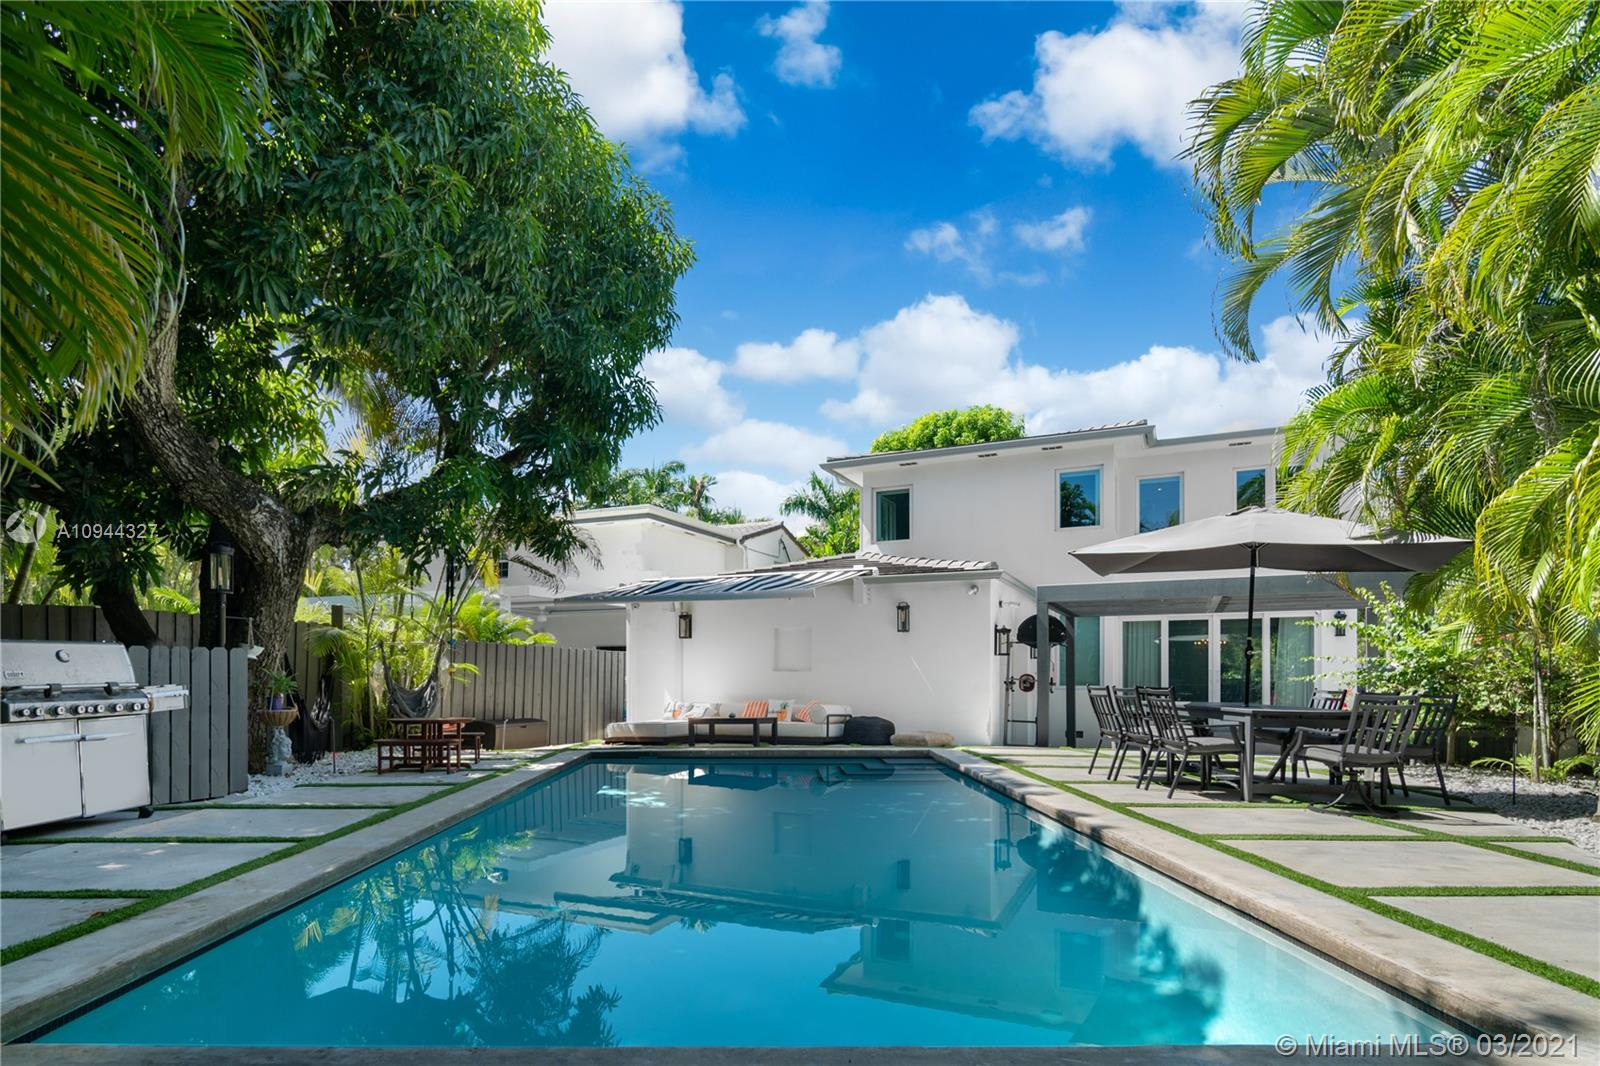 Nautilus - 4361 Royal Palm Ave, Miami Beach, FL 33140